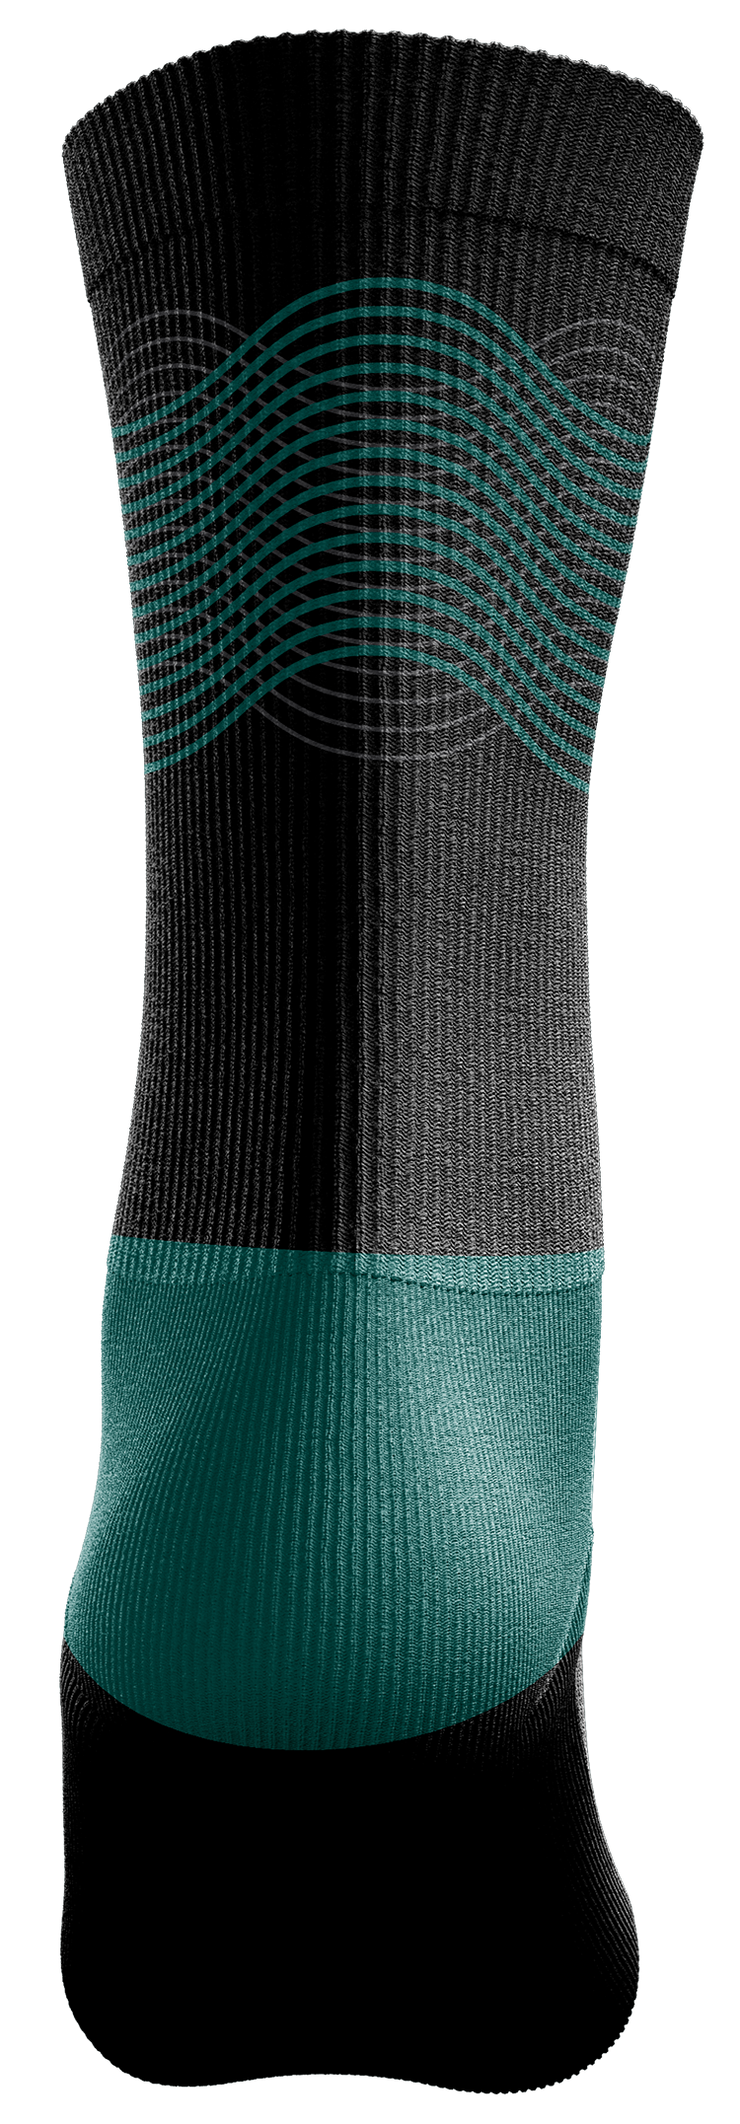 Image of the back of a single, black Custom Sock from Str8 Sports.